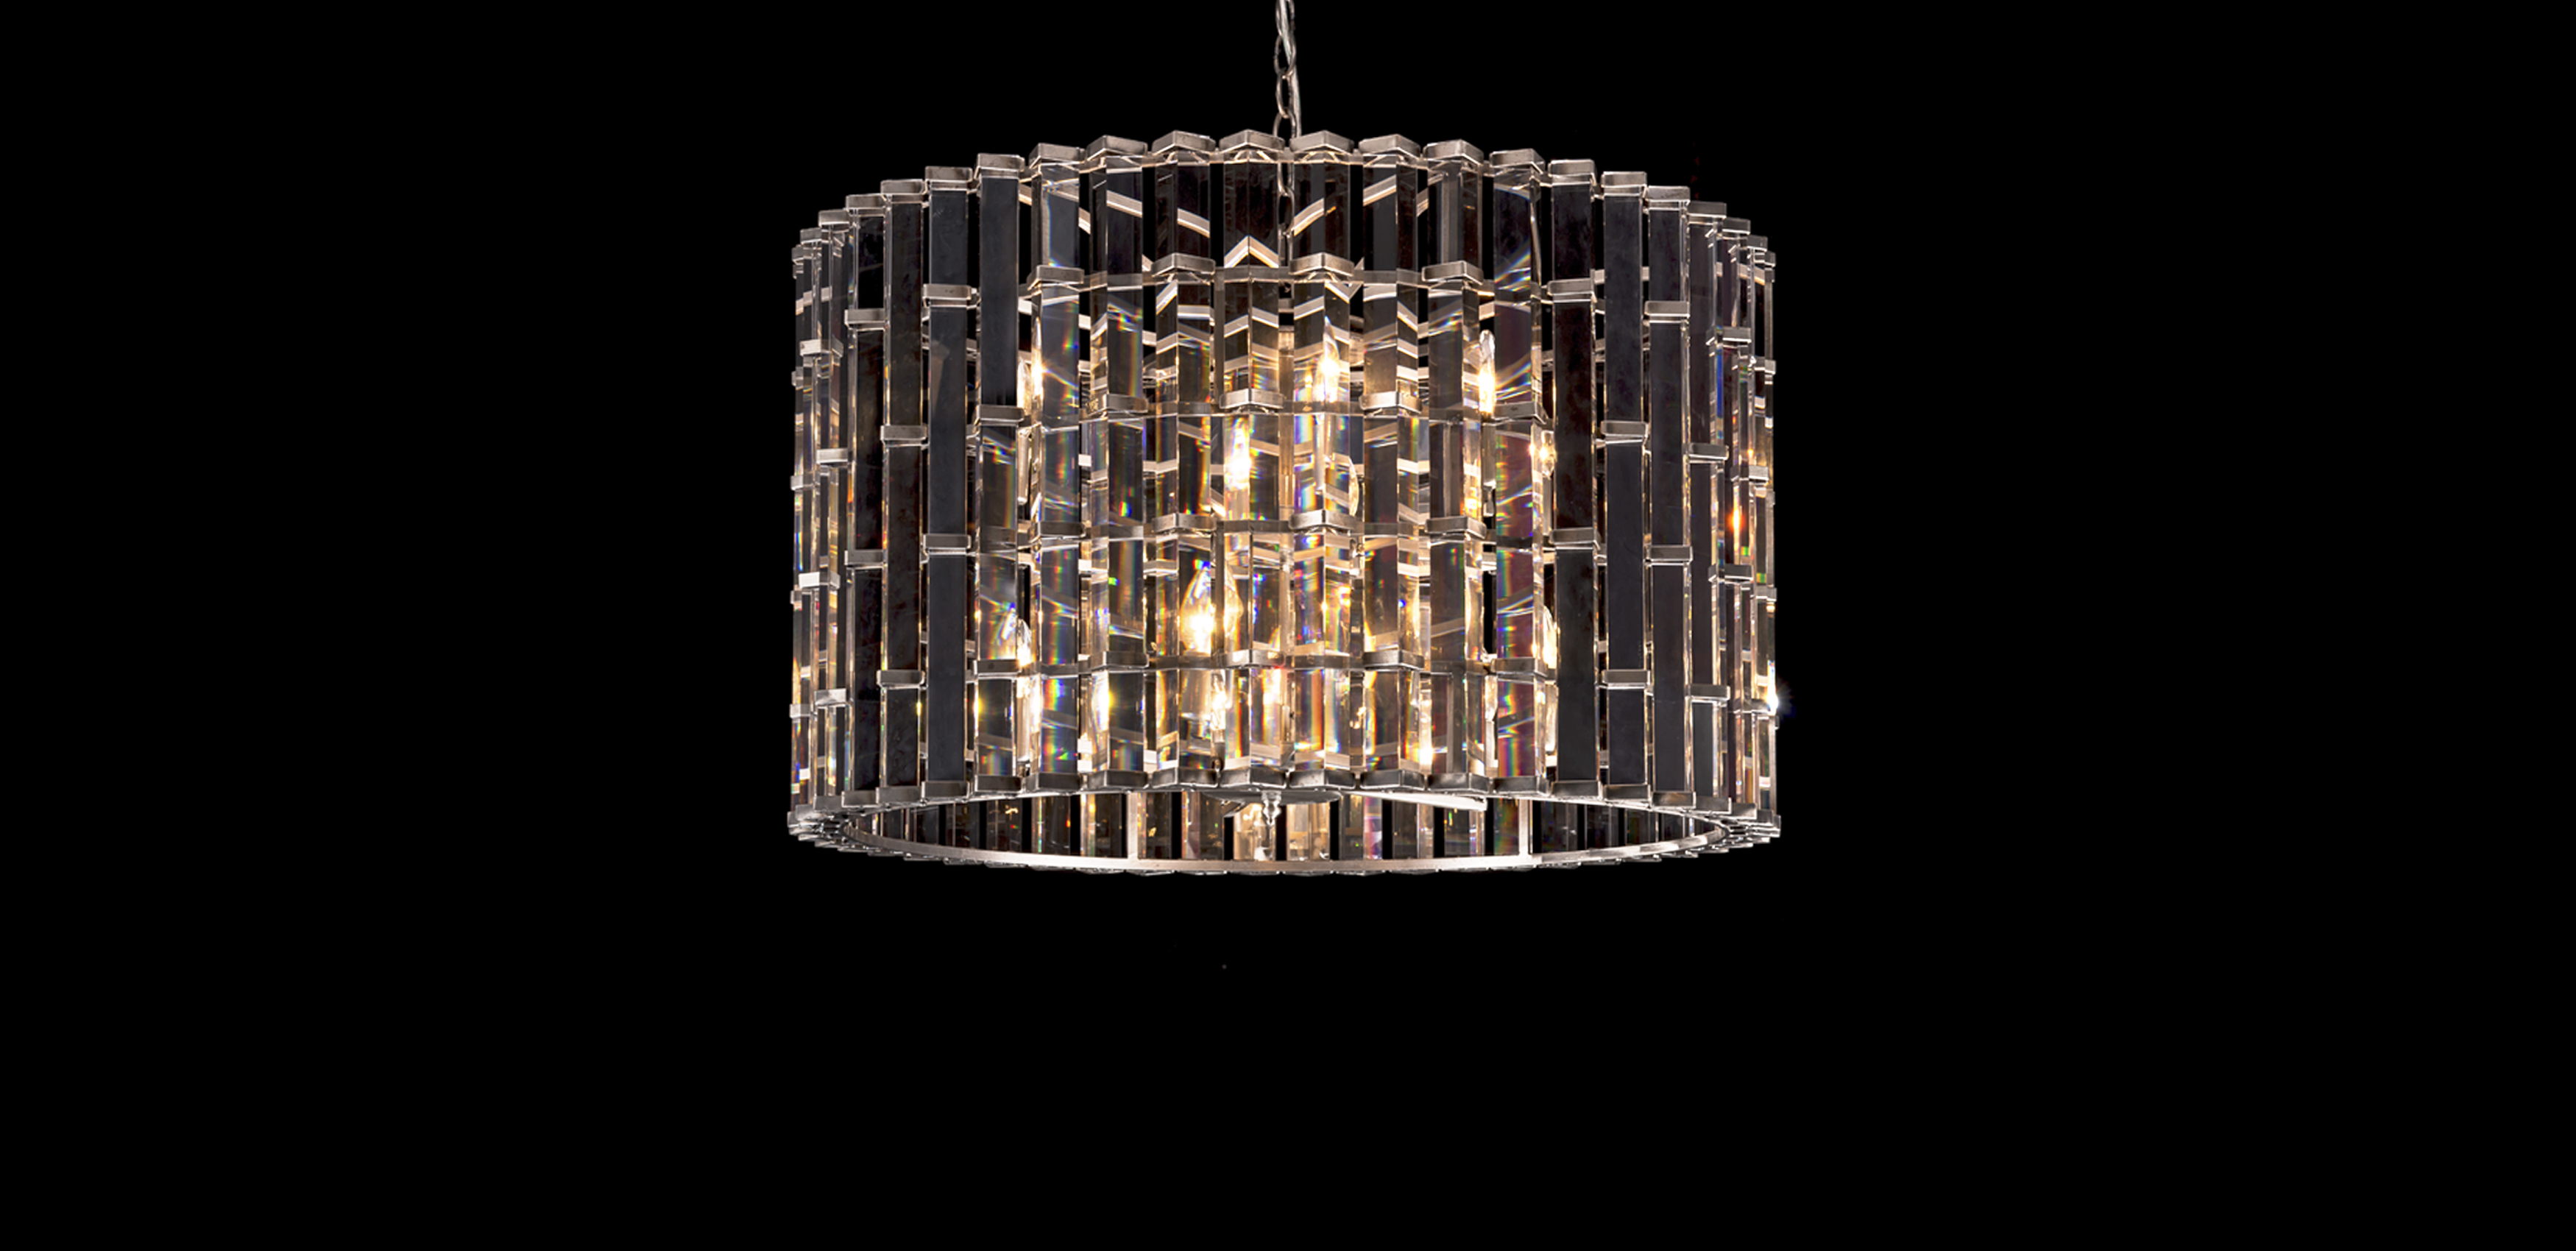 obj fbx mtl voltolina models model furniture max pendant chandelier murano canaletto lamp glass